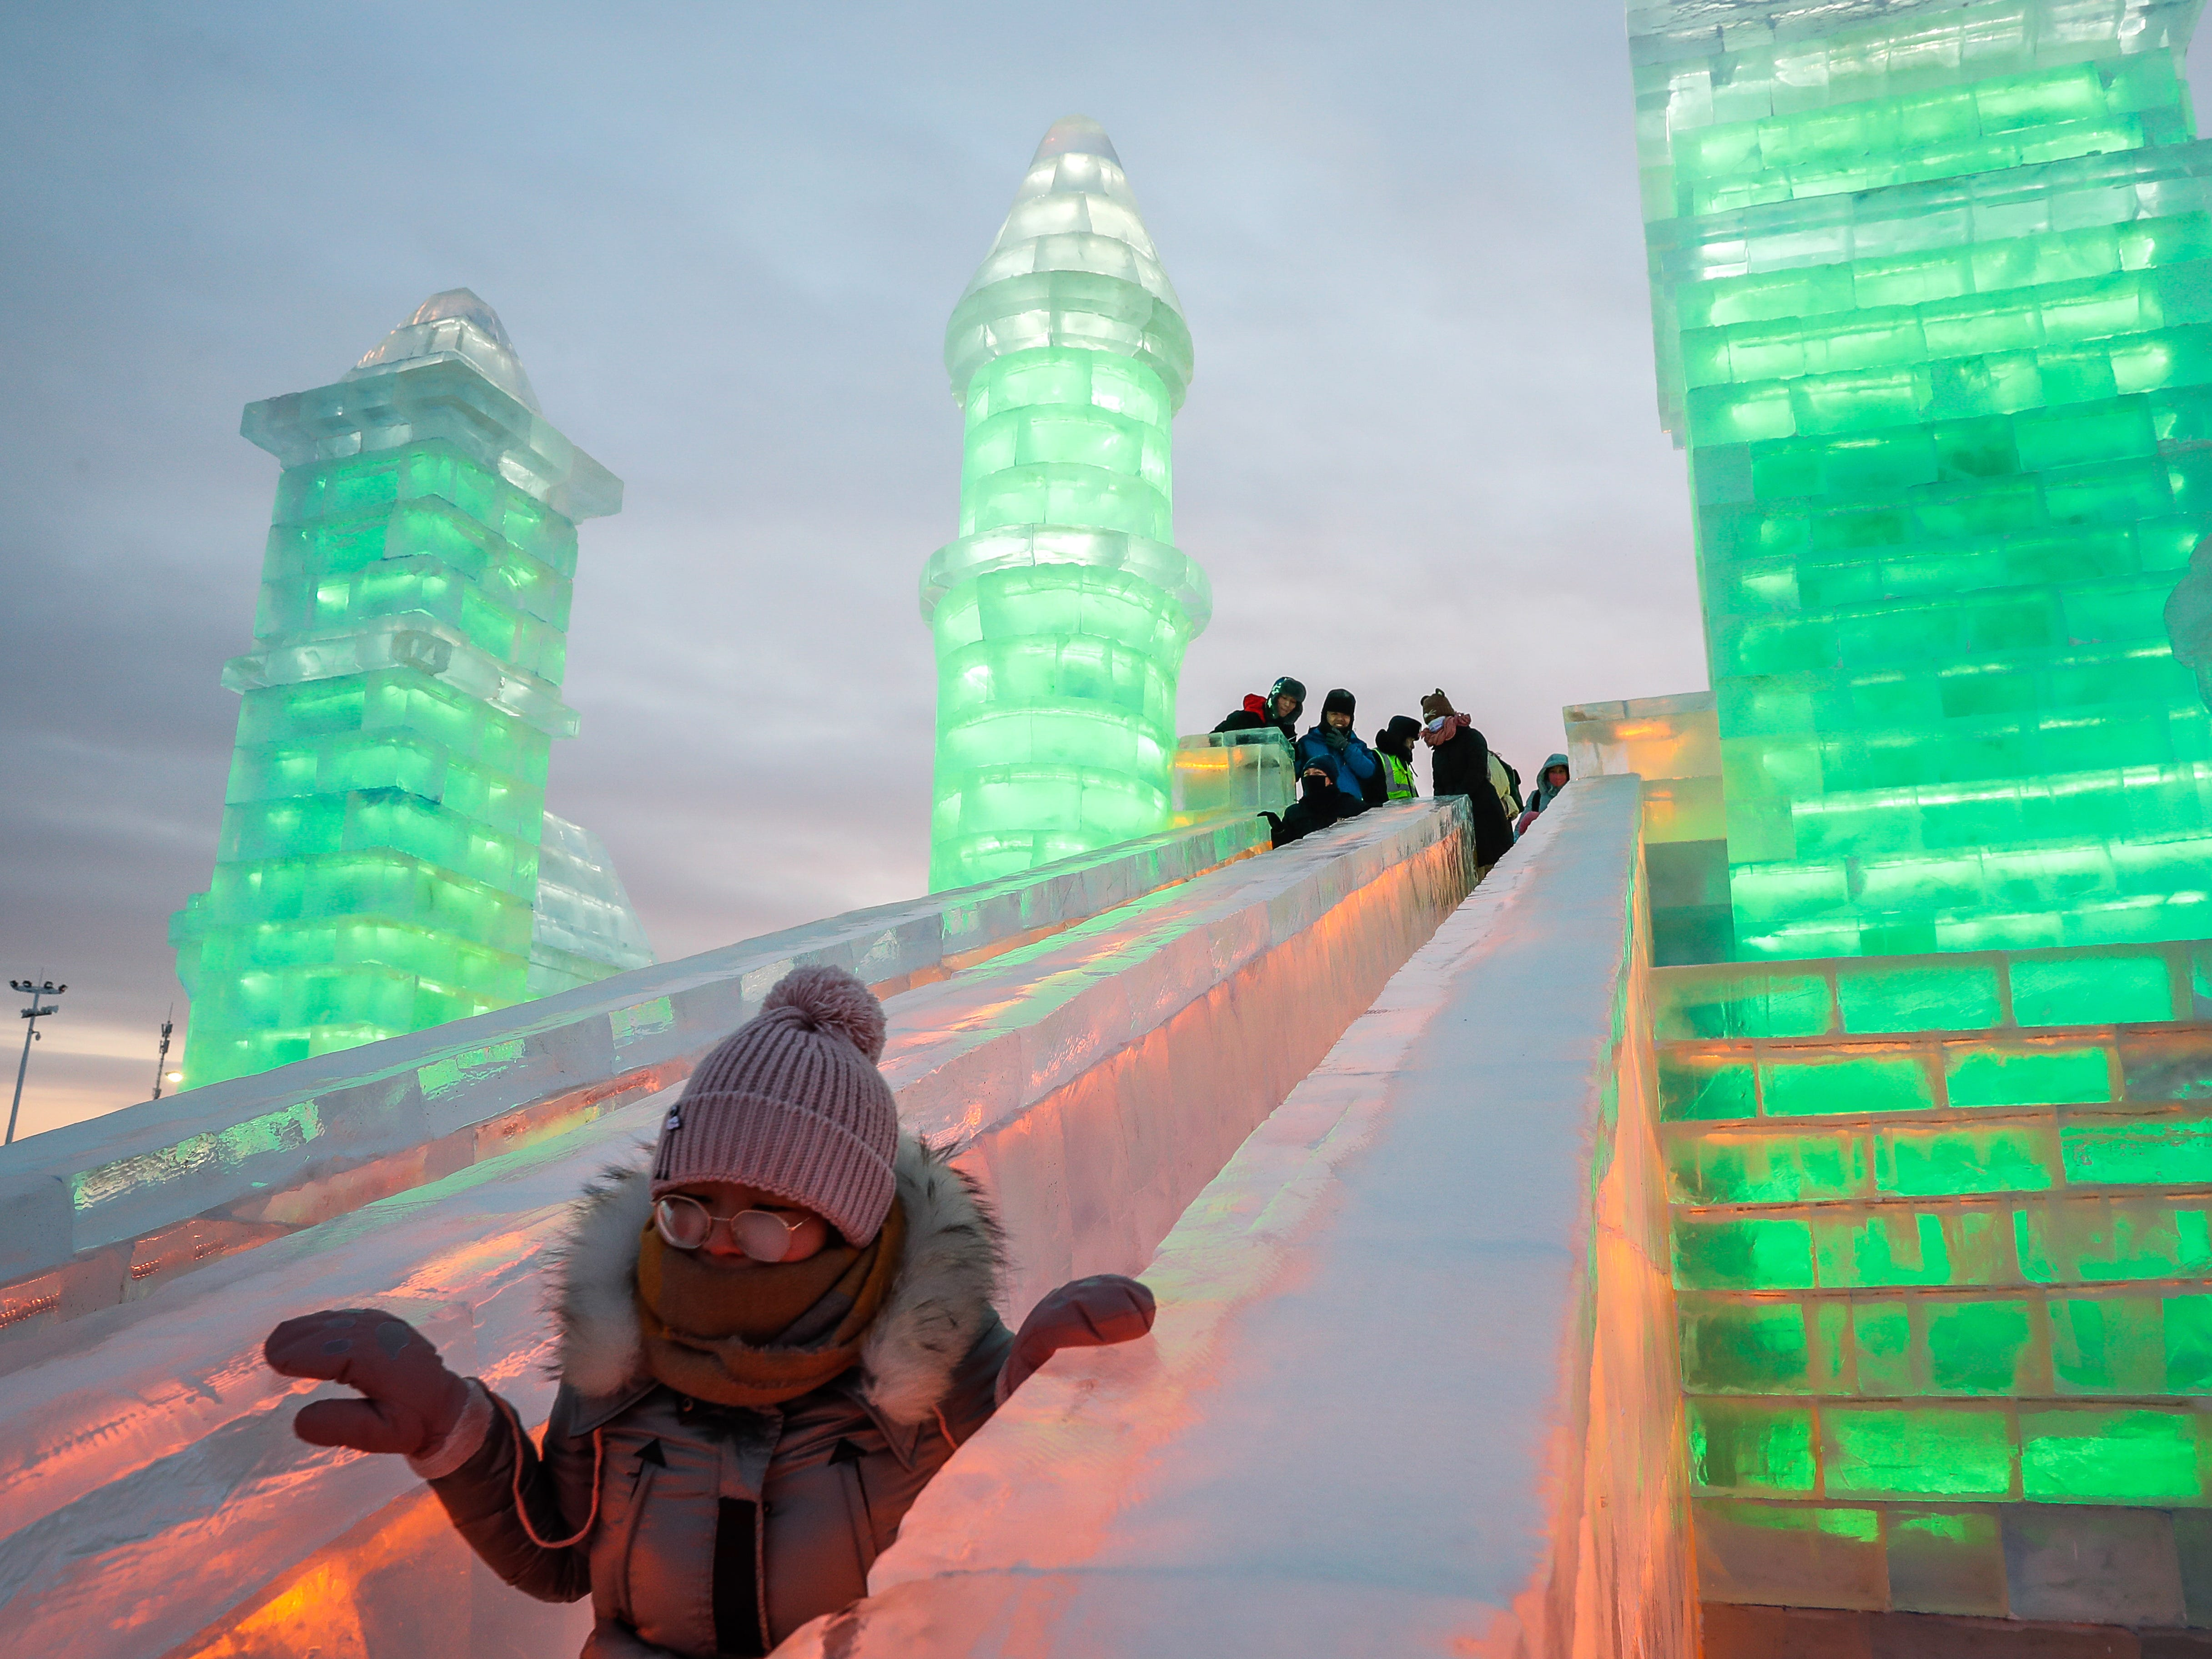 A child rides a slide at the Ice and Snow World during the annual Harbin International Ice and Snow Sculpture Festival.